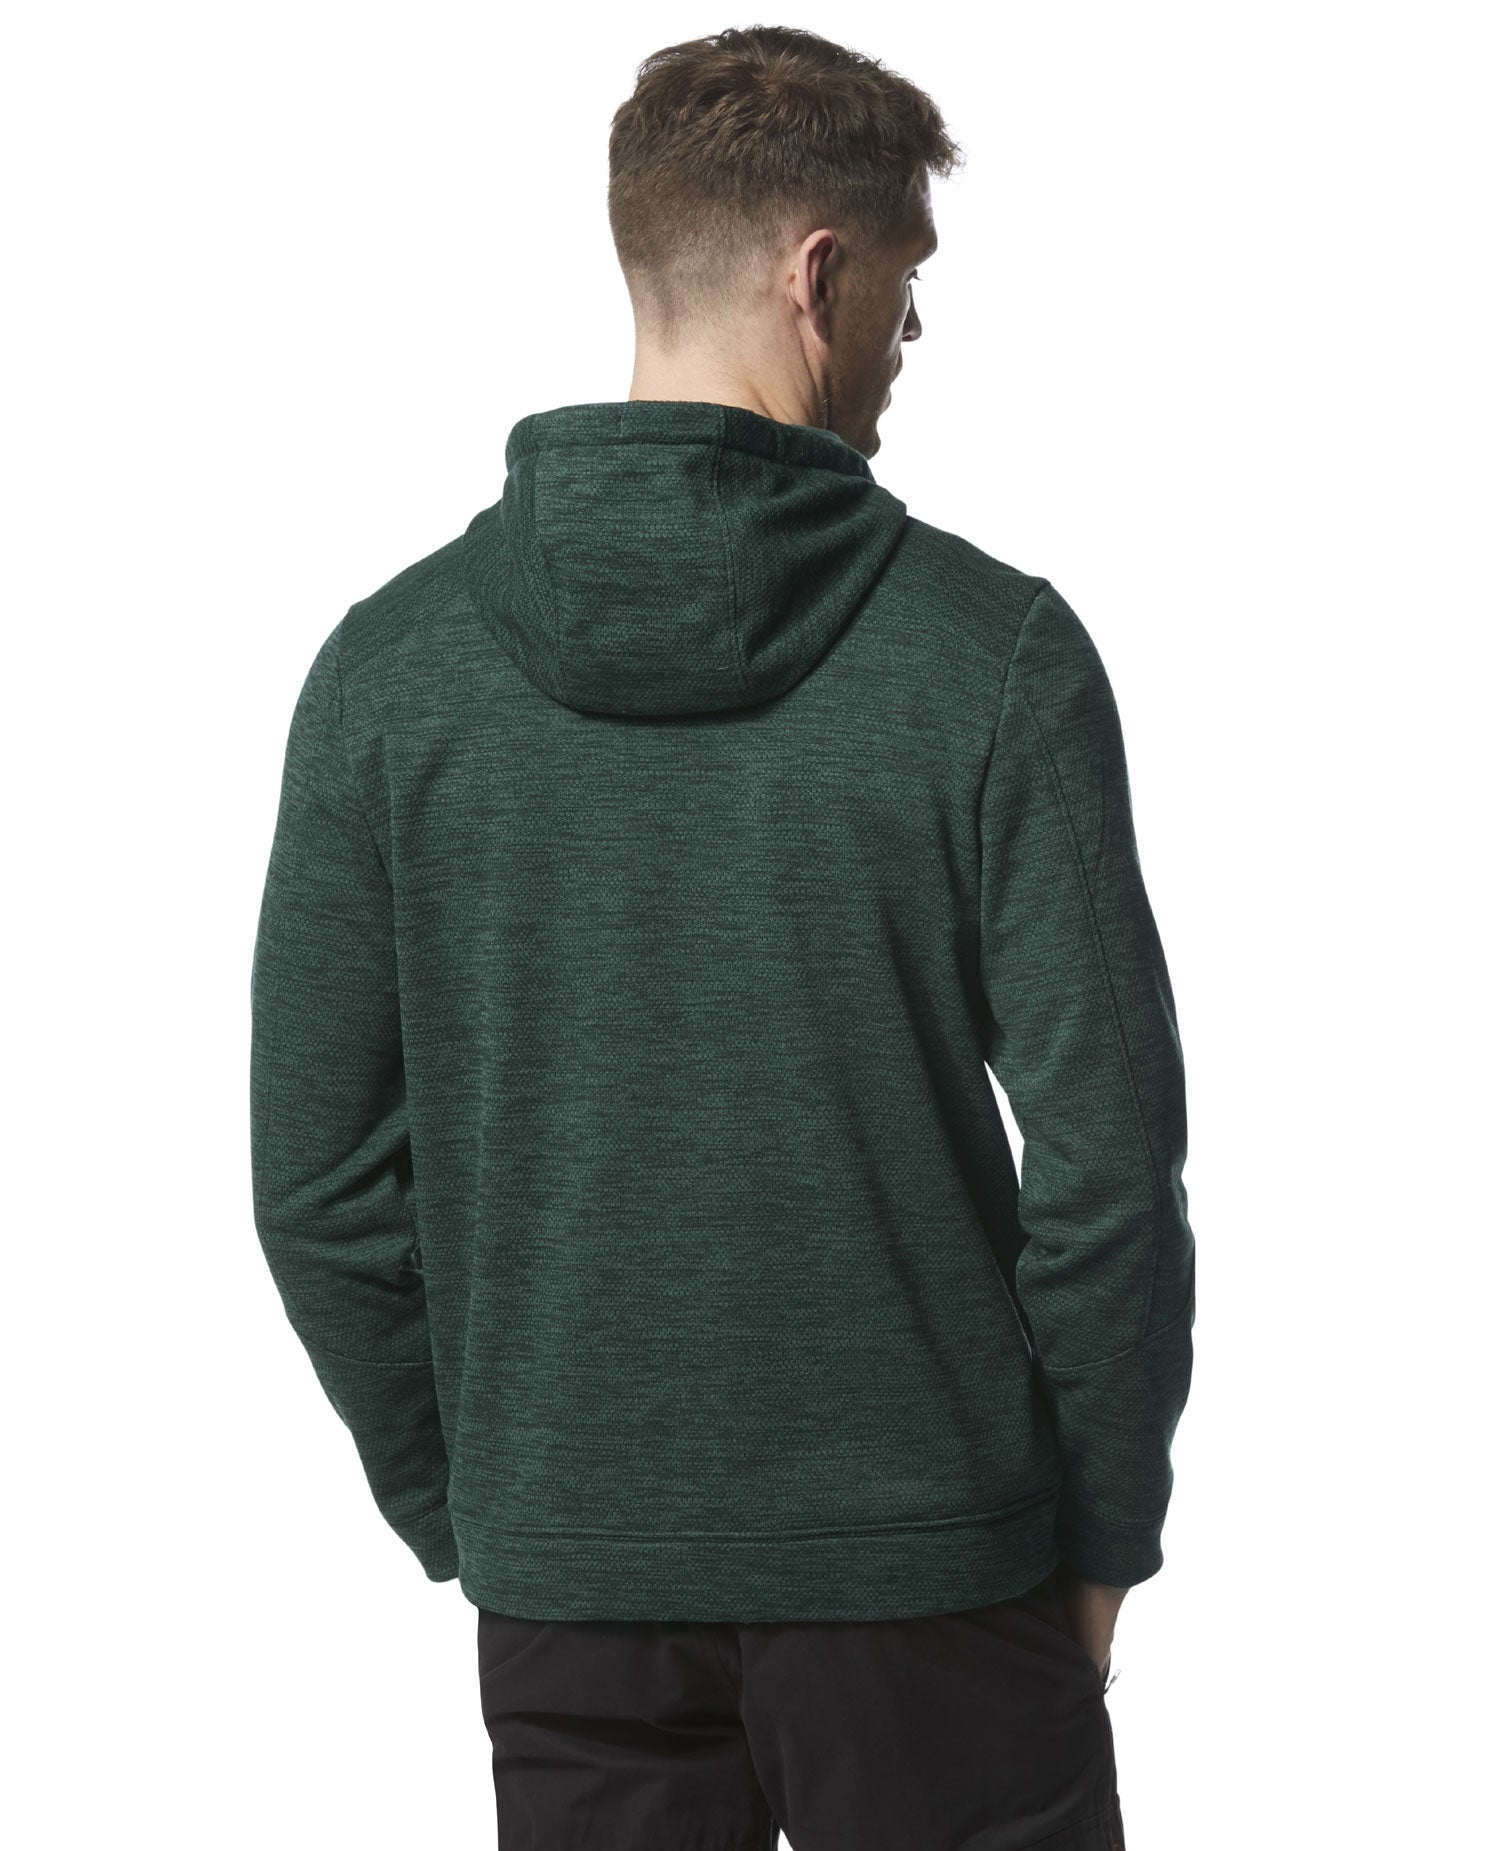 rear view Strata Fleece Hoody by Craghoppers